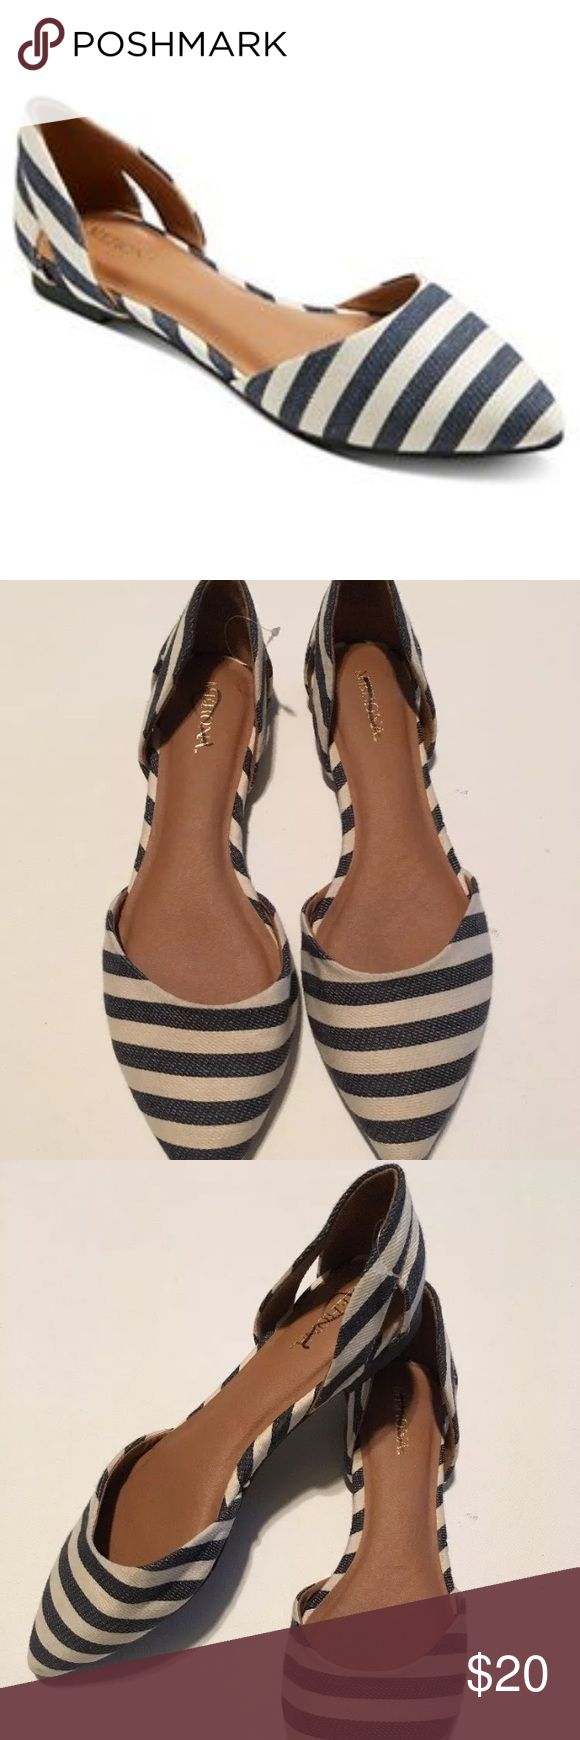 Merona Celine Striped blue white ballet flats Pair of striped pointed toe ballet flats by Merona (Target). They are d'orsay style and cut out at sides. Striped for a nautical vibe. New without tags or box and brand has a line through it with permanent marker to prevent returns. Runs true to size in my opinion. Merona Shoes Flats & Loafers